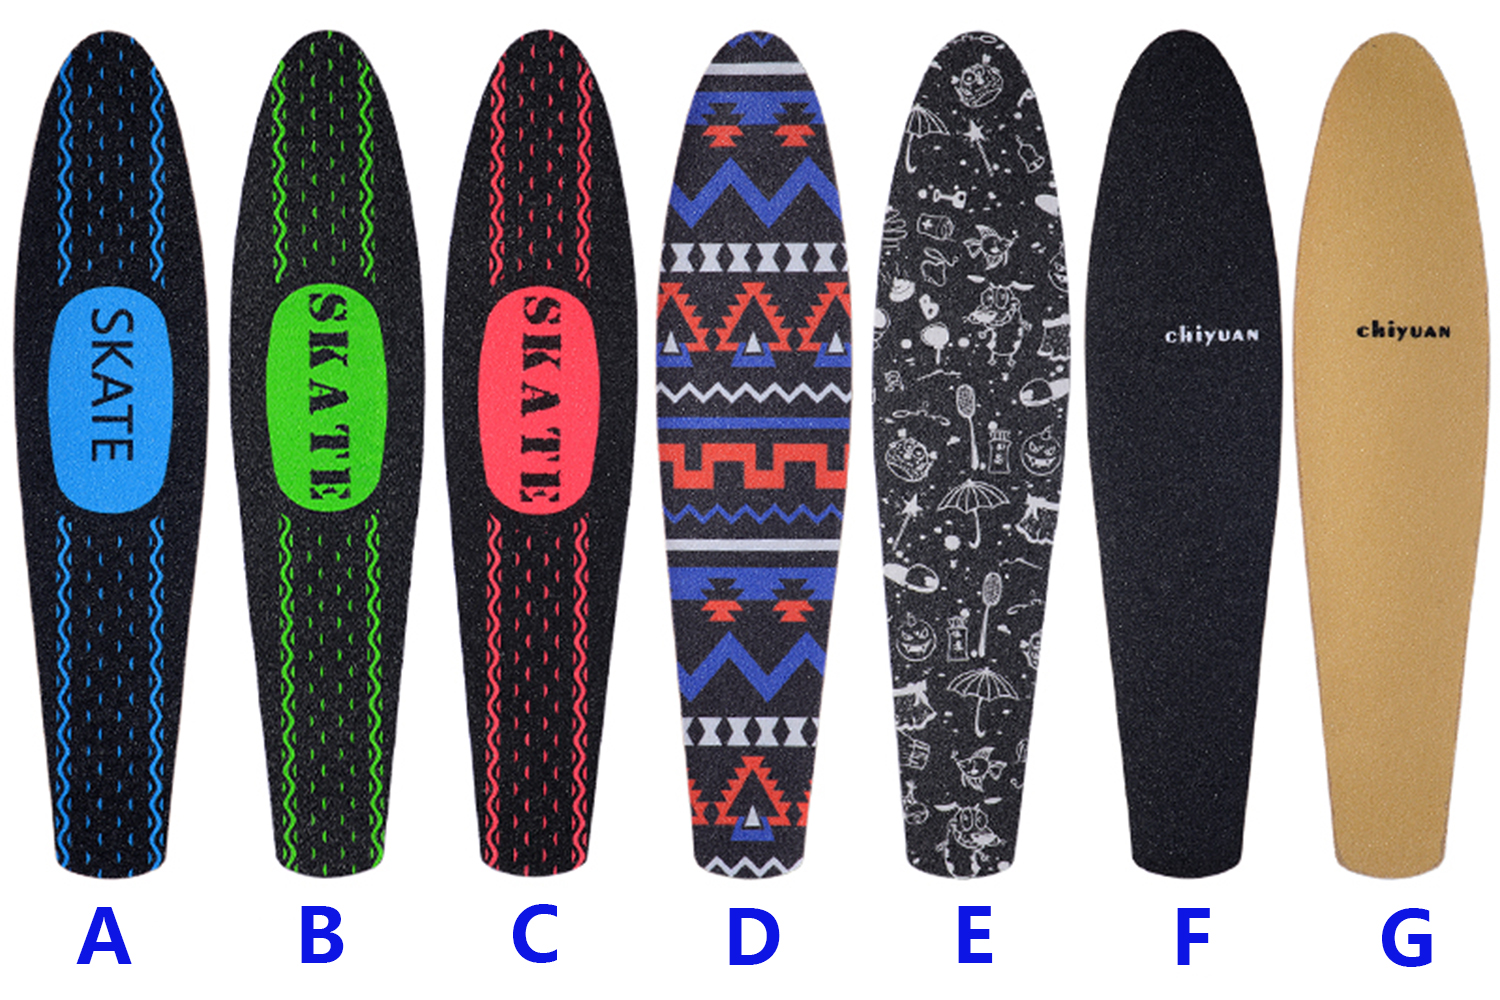 7 Colors 22 Inch 55cm Penny Board Sticker Sandpaper Waterproof Abrasive Wear Resisting Replace Banana Single Rocker